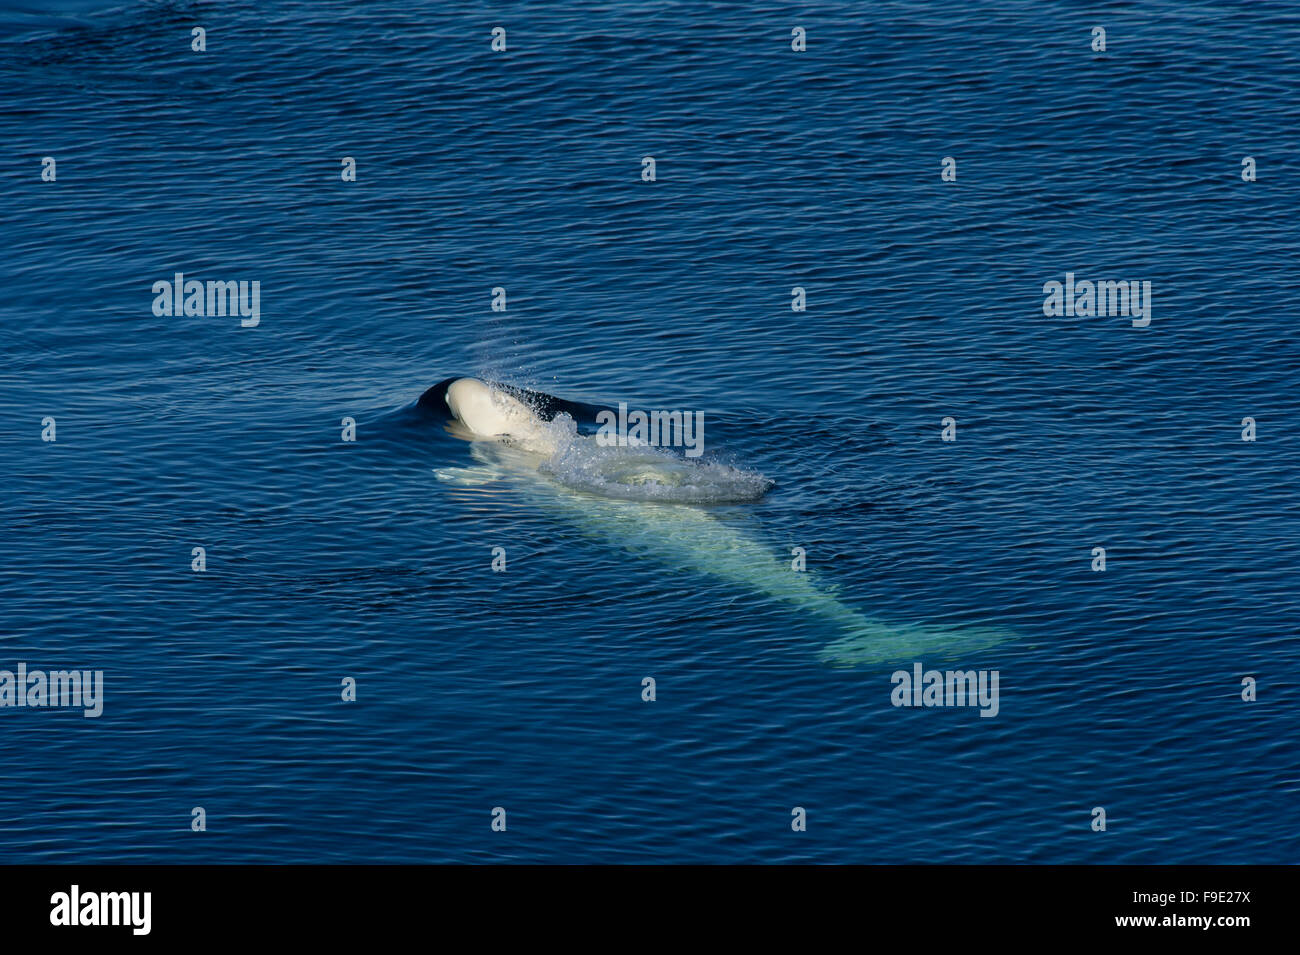 A Beluga Whale (Delphinapterus leucas) surfacing to breath in the blue Arctic waters of the North West coast of - Stock Image